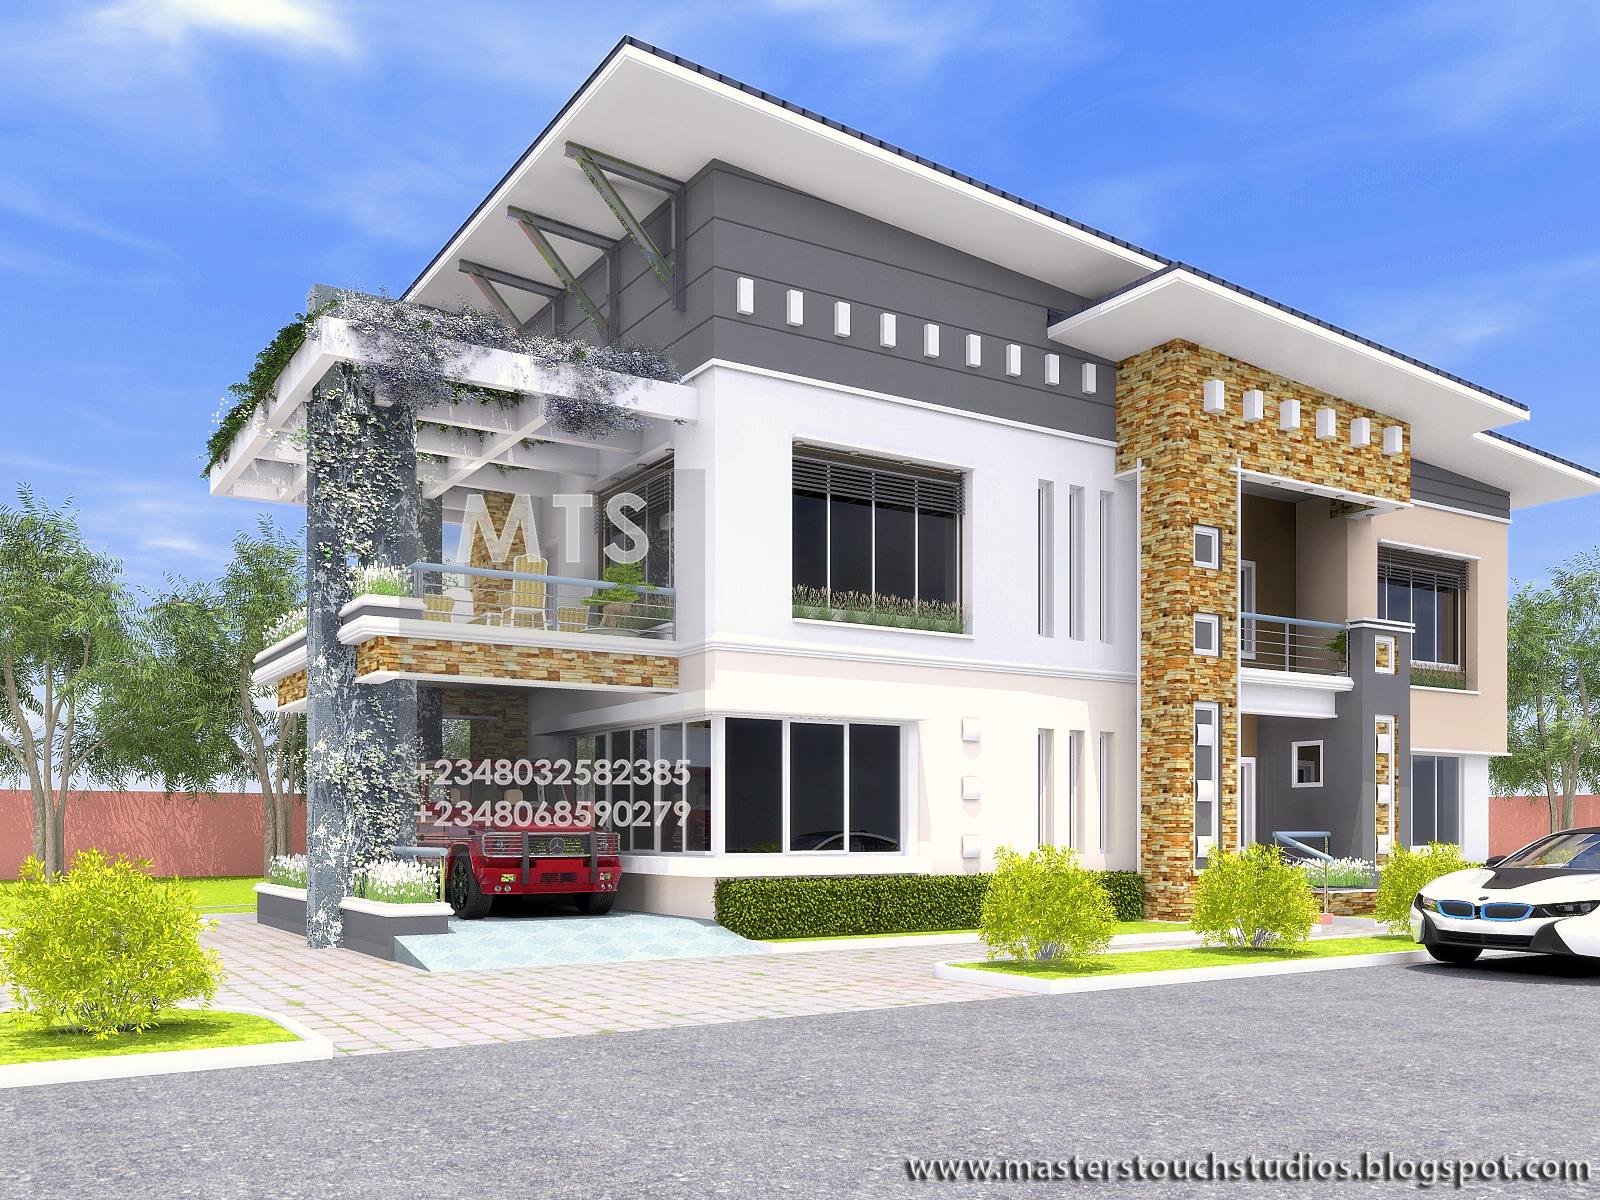 Engr eddy 6 bedroom duplex residential homes and public for Home designs pics